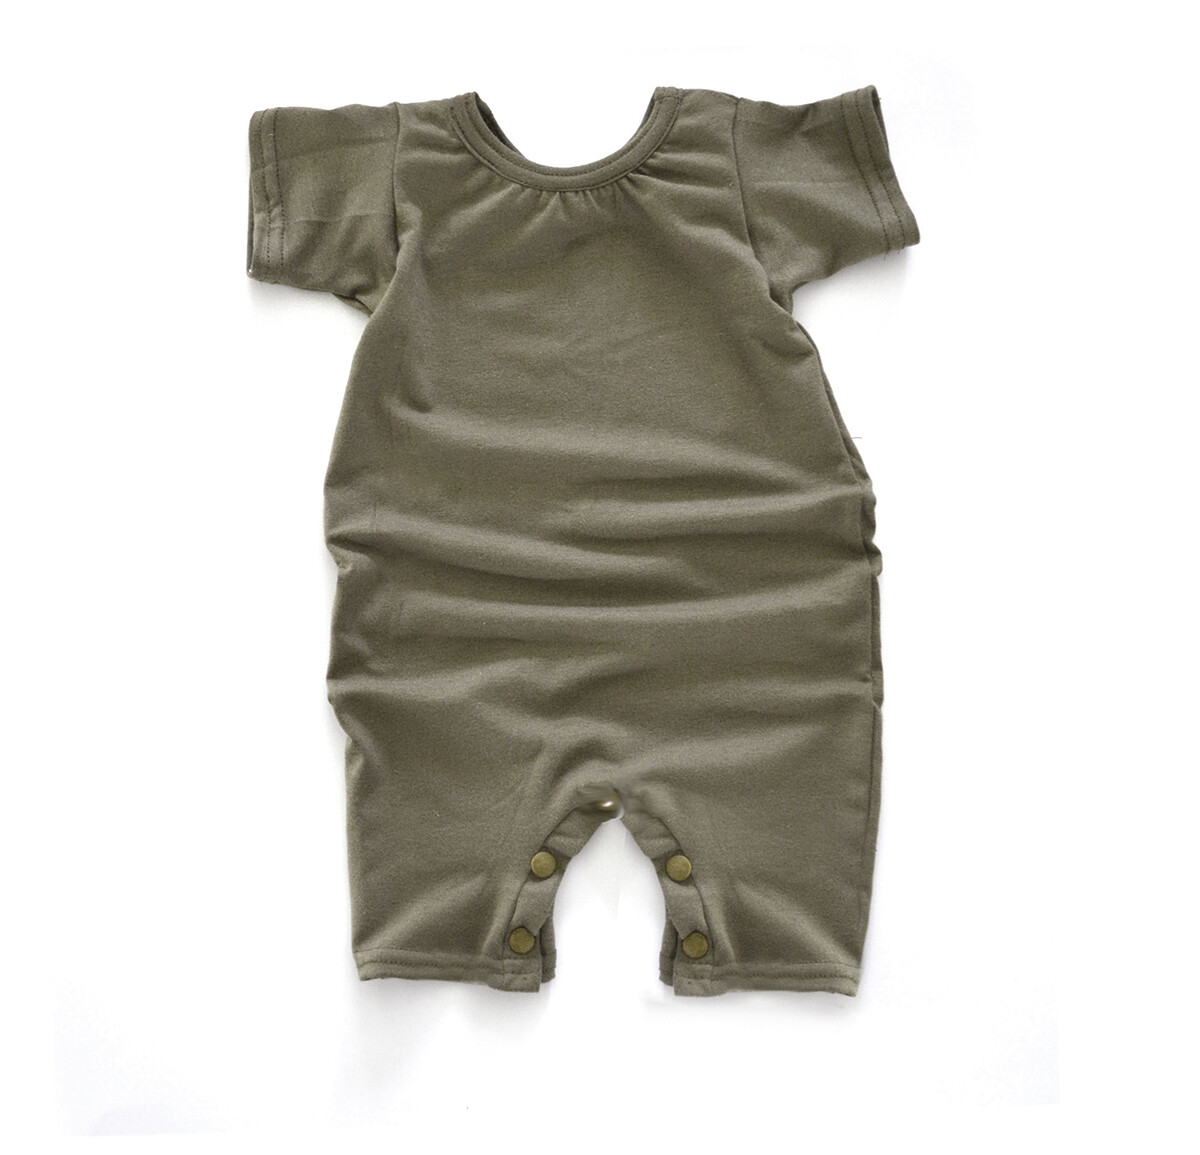 Little Sprout Short Sleeve Baby Romper - Tencel - Olive